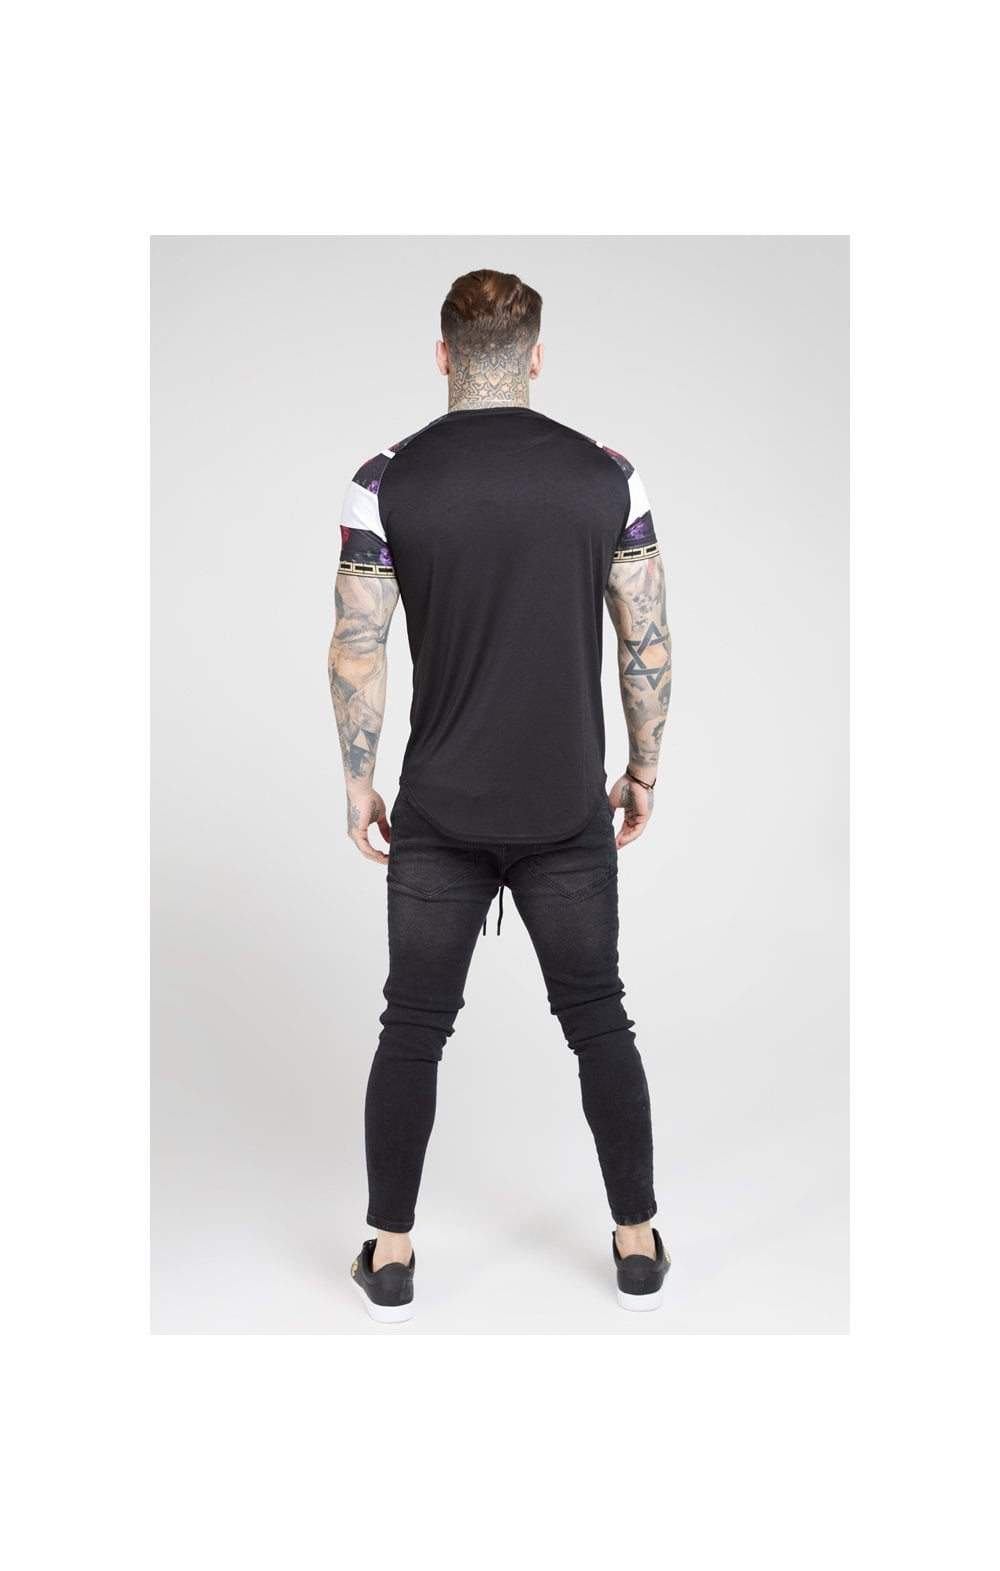 SikSilk S/S Raglan Sprint Tape Tee - Black & Oil Paint (5)